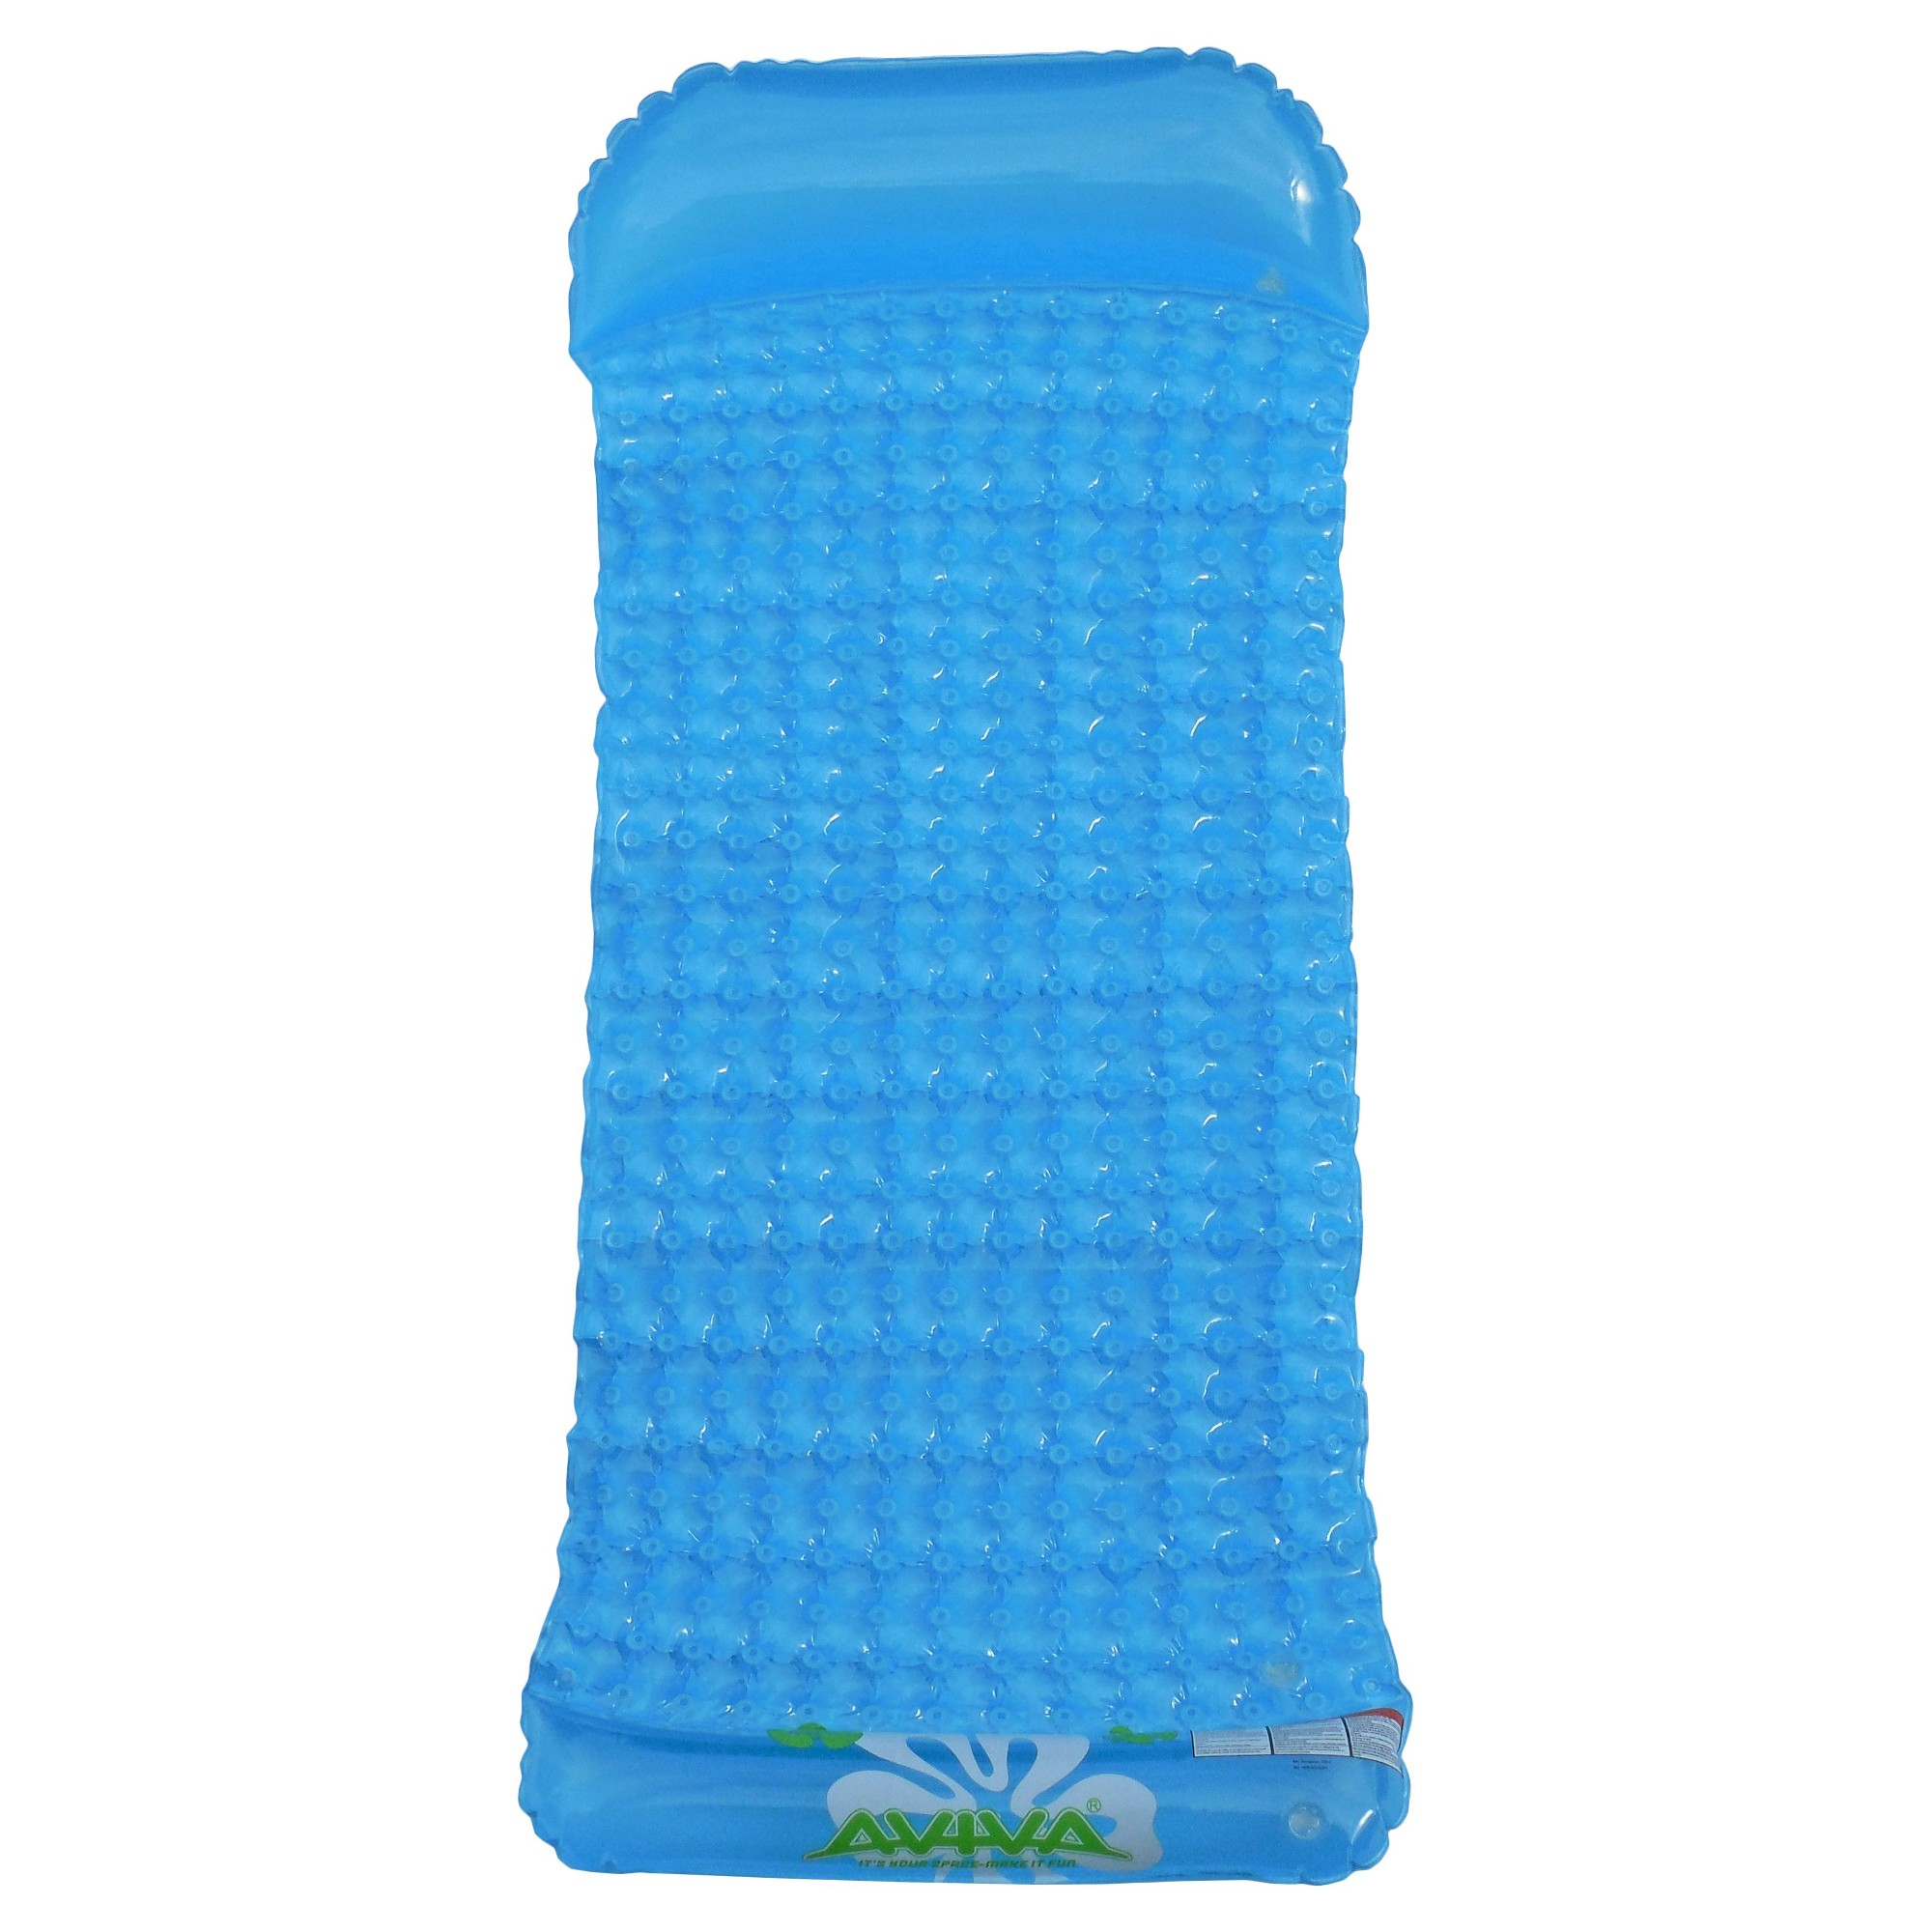 Aviva Apollo Lounge Float, Inflatable pool loungers